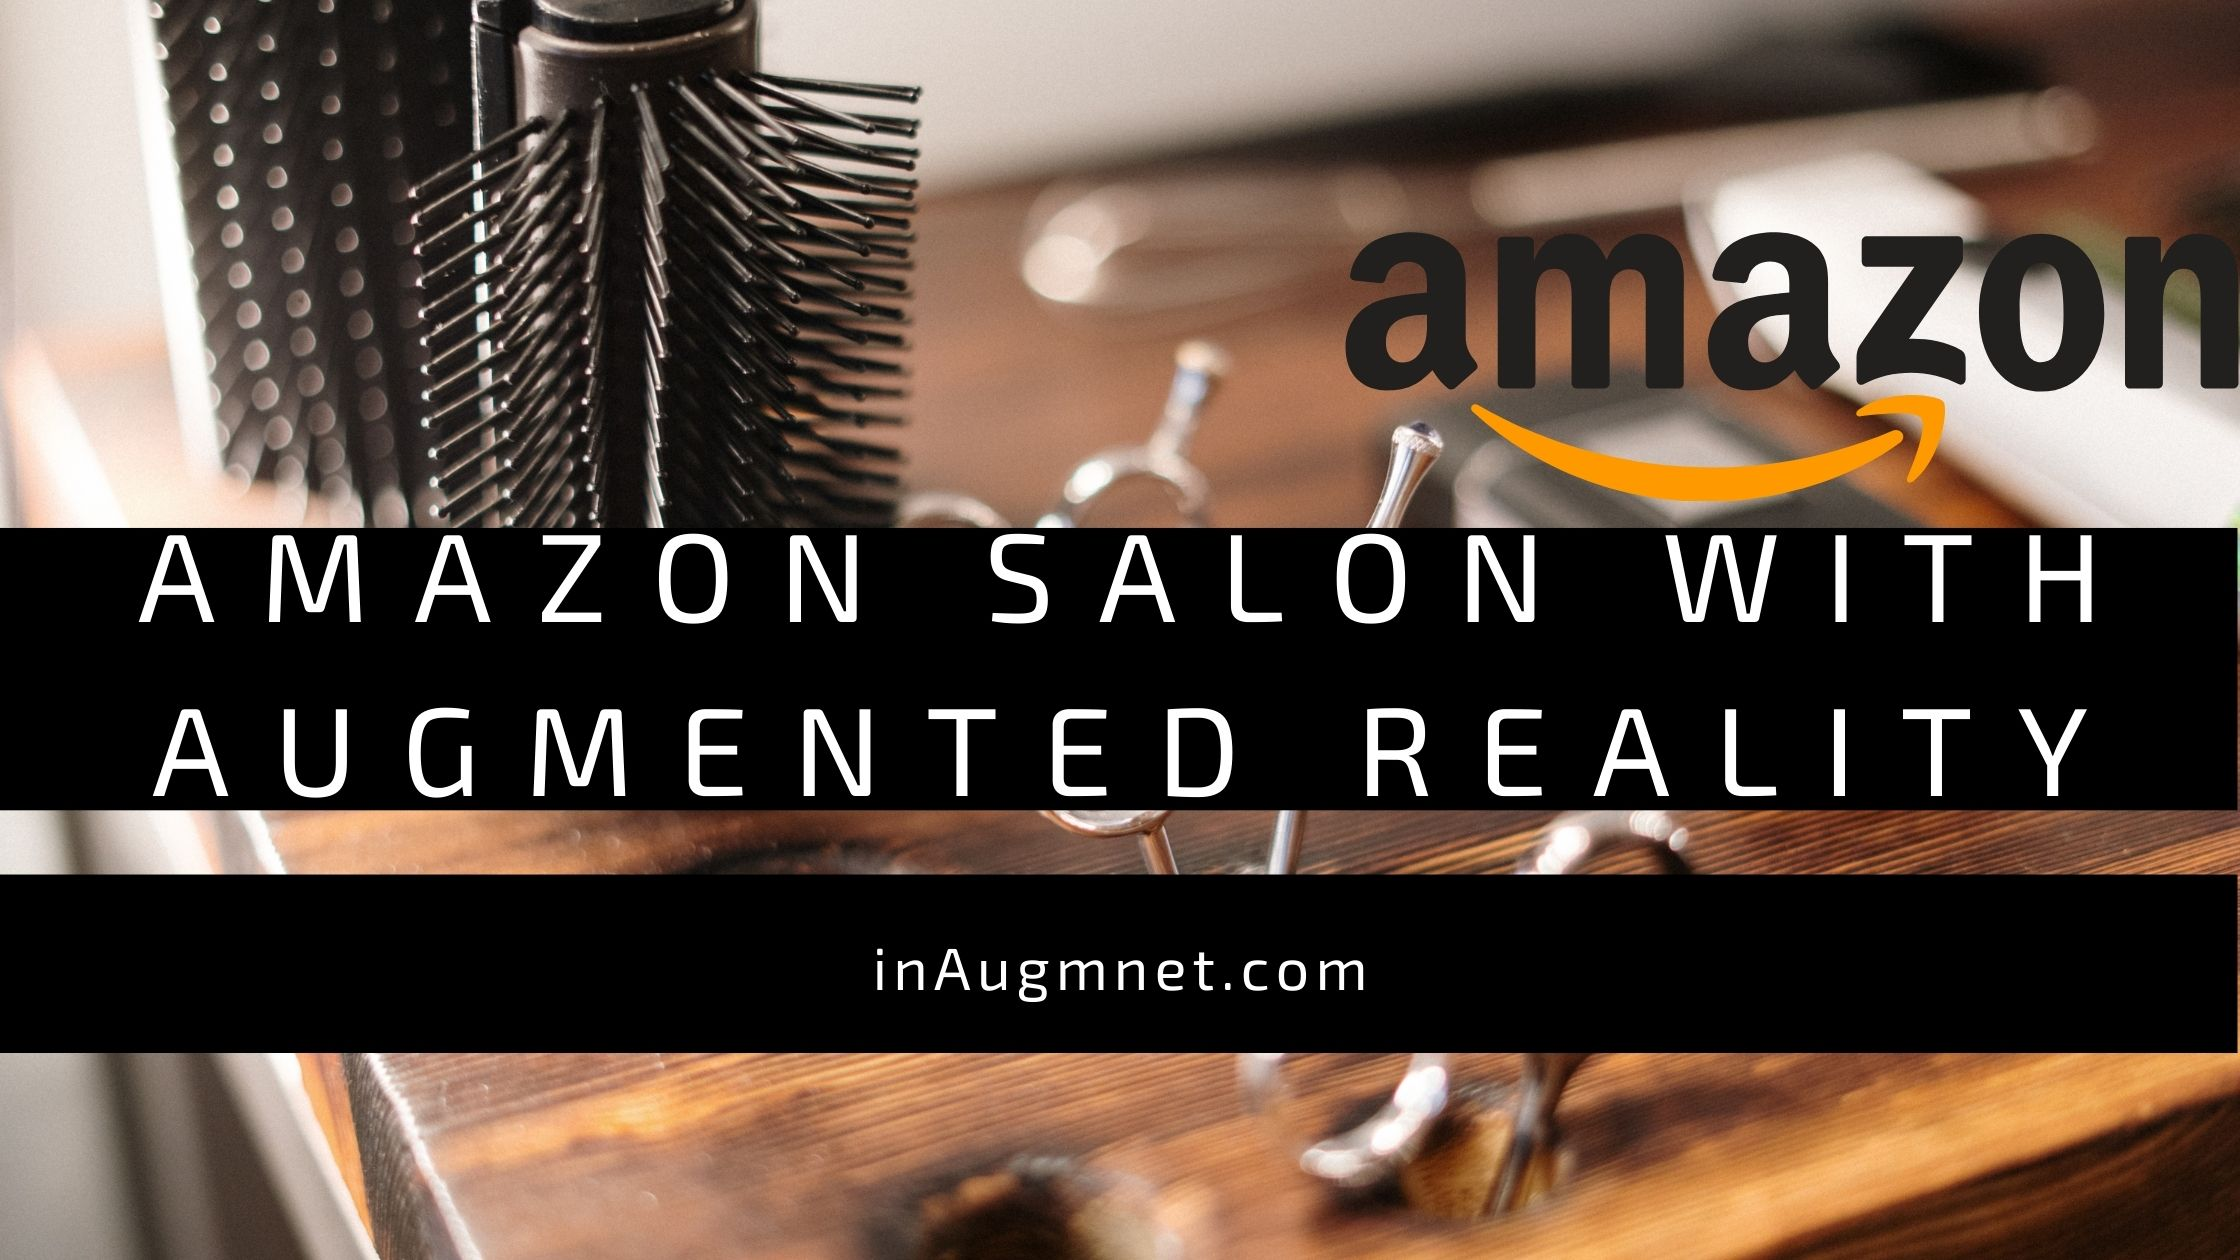 Amazon salon with Augmented Reality